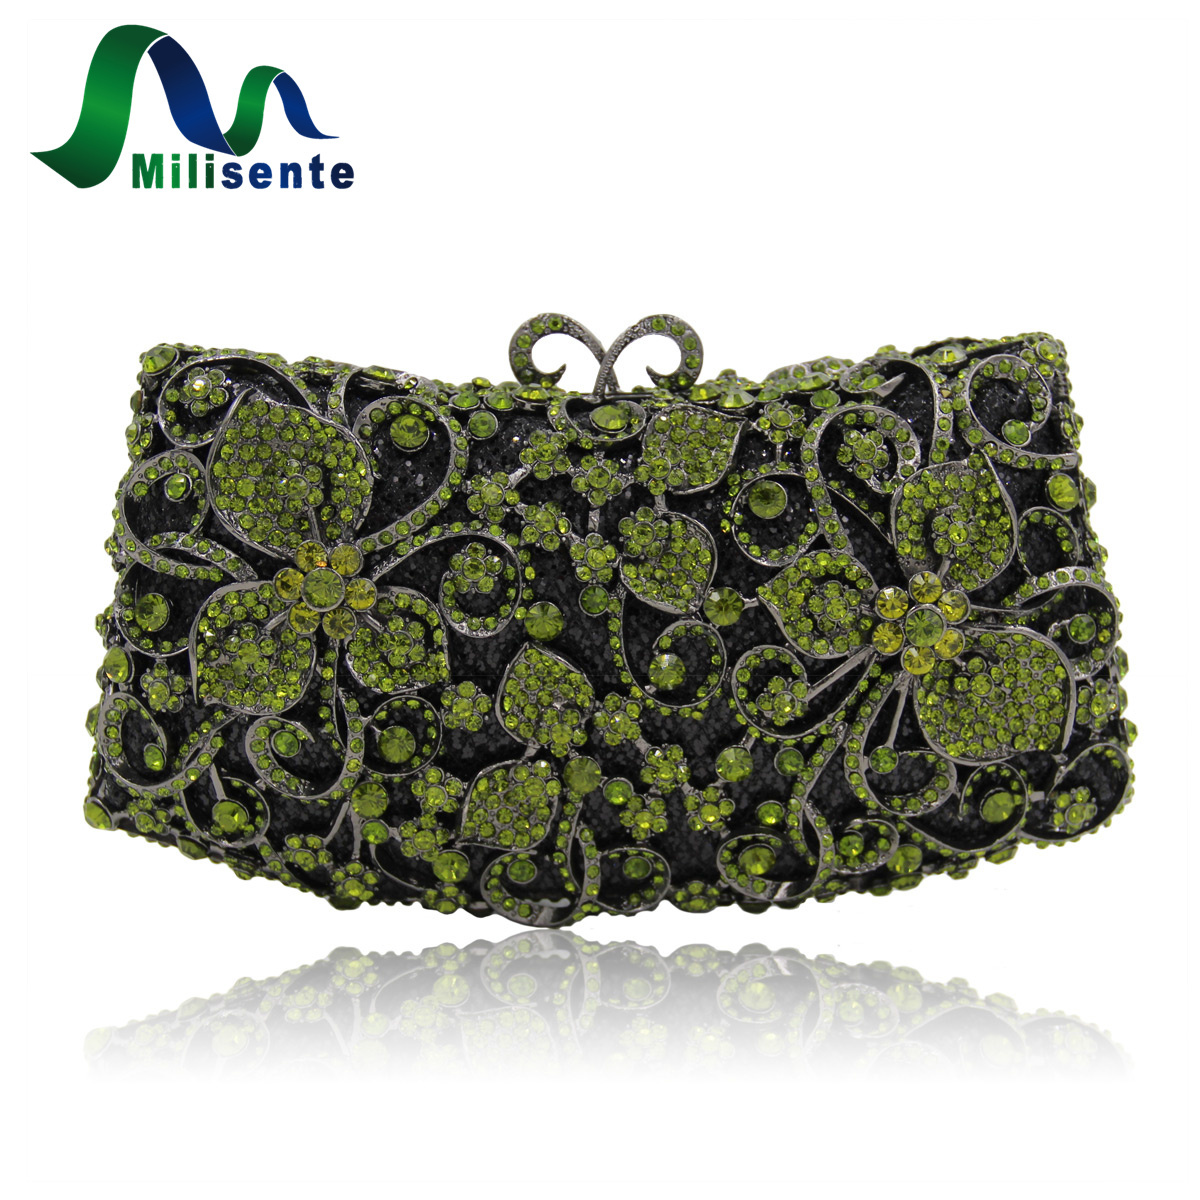 Milisente Women Luxury Rhinestone Clutch Evening Handbag Ladies Crystal Wedding Purses Dinner Party Bag Gold milisente high quality luxury crystal evening bag women wedding purses lady party clutch handbag green blue gold white